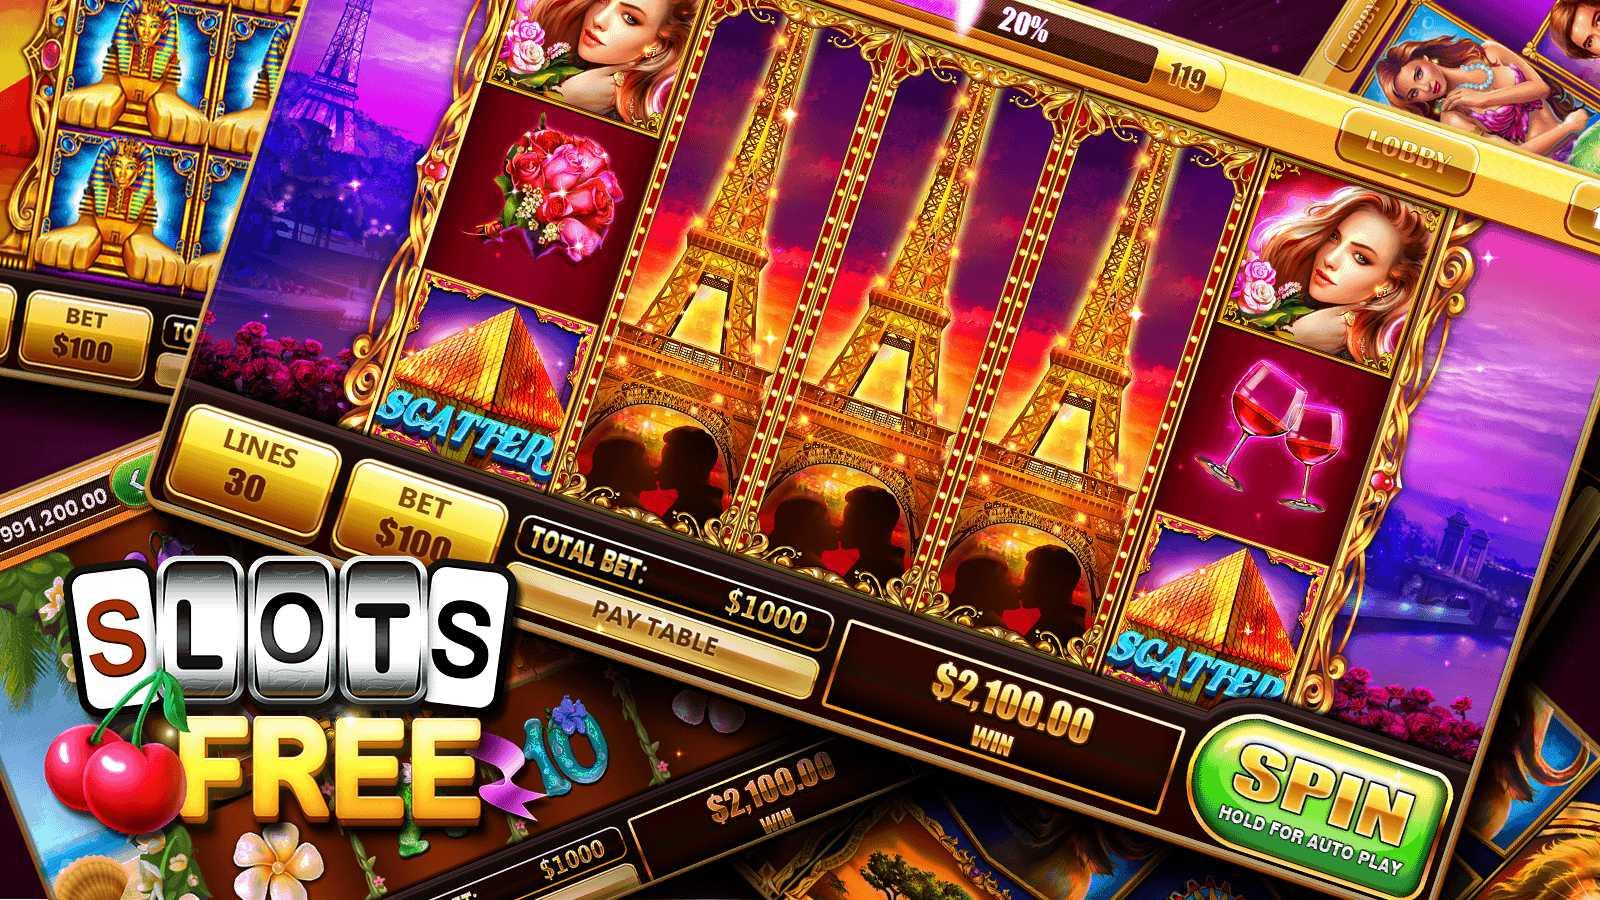 play free casino slot games online